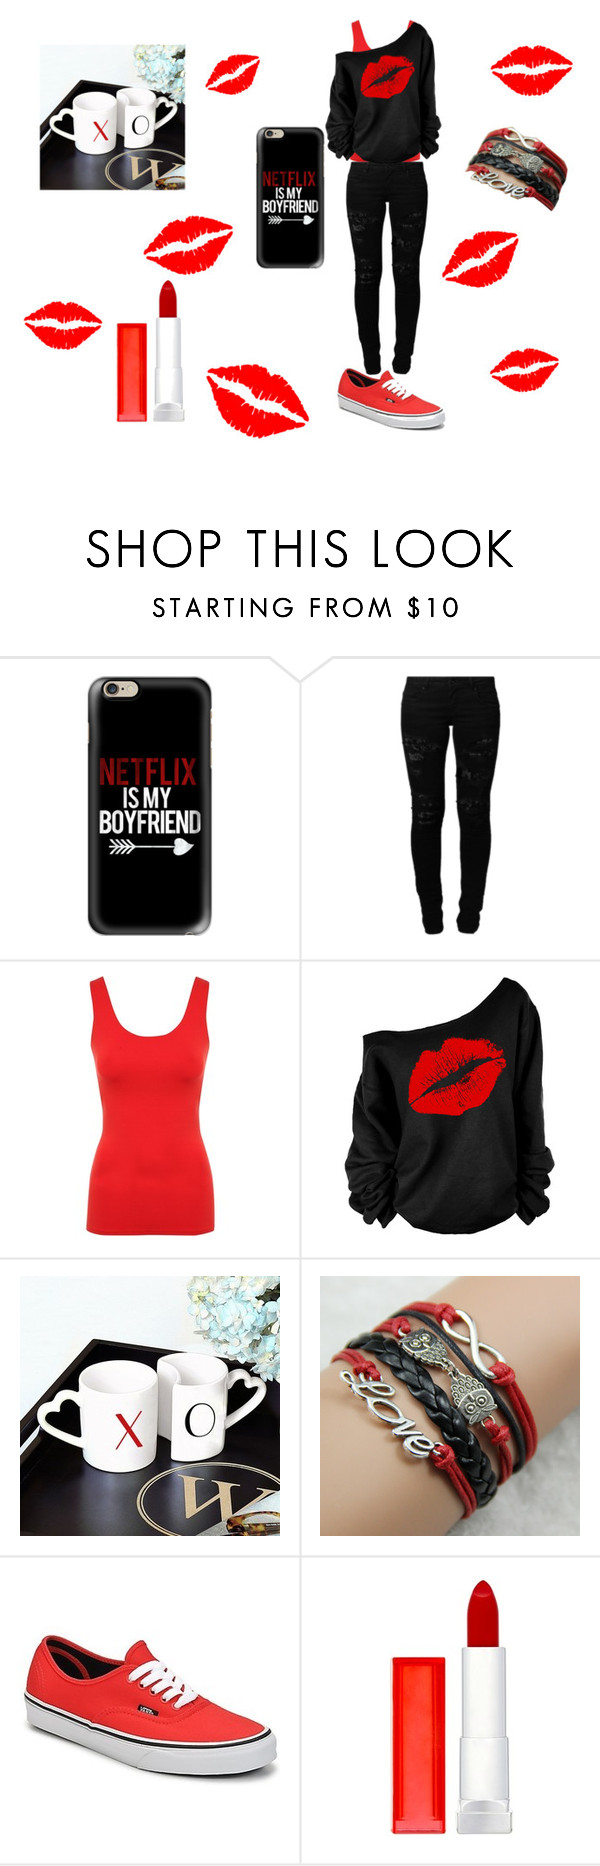 """""""Netflix is my Boyfriend<3"""" by meagan333 ❤ liked on Polyvore featuring Casetify, Vero Moda, Jane Norman, Cathy's Concepts, Vans and Maybelline"""